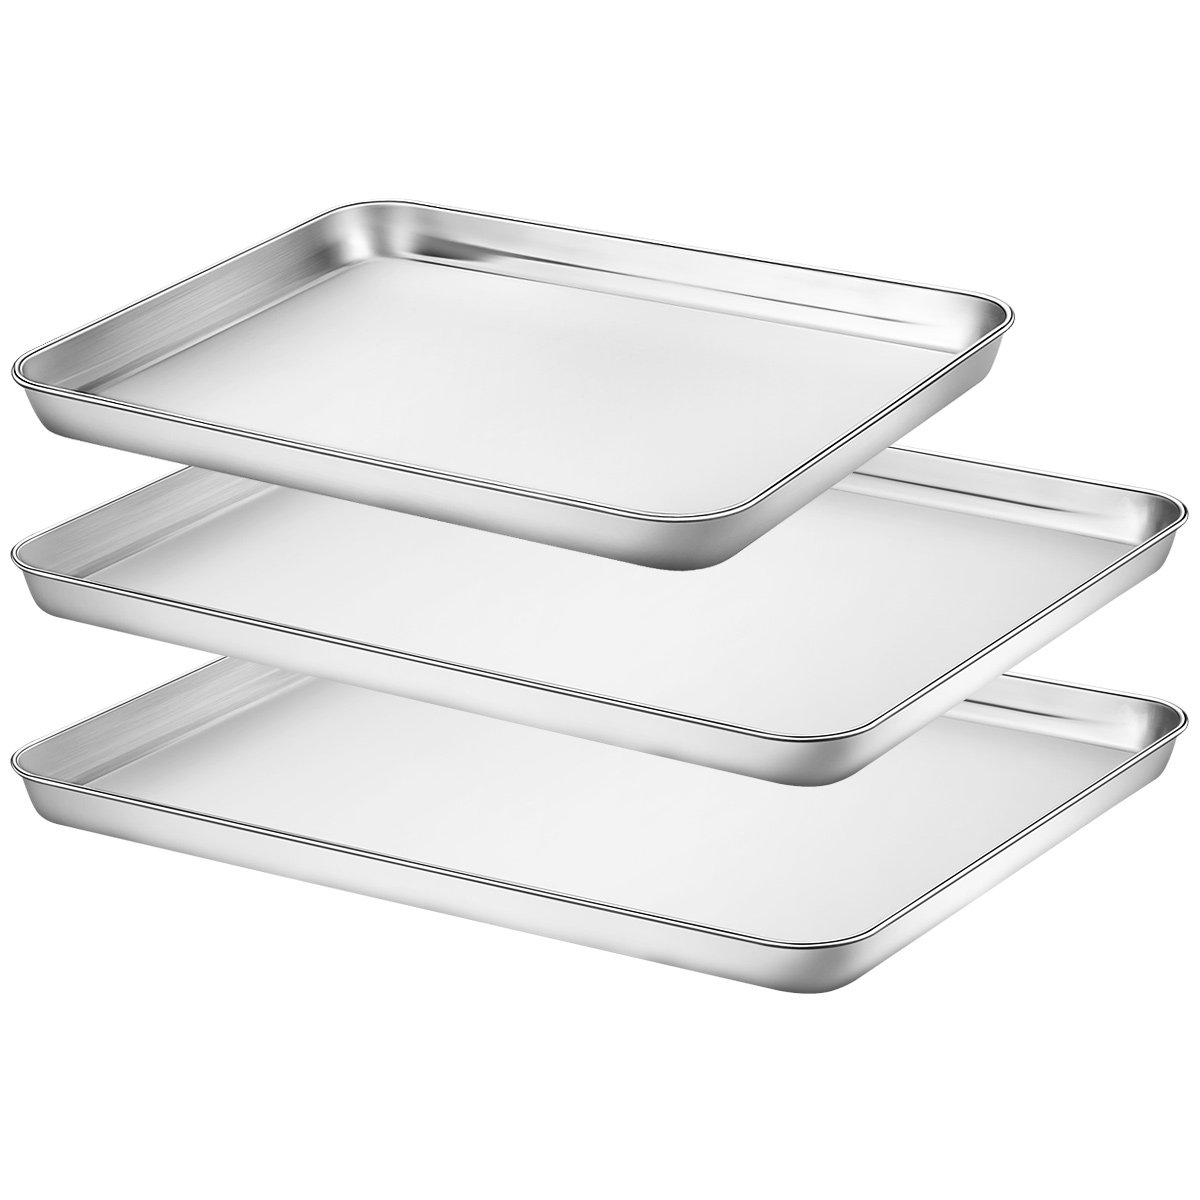 Baking Sheet Set of 2, HKJ Chef Stainless Steel Cookie Sheet Set 2 Pieces Toaster Oven Tray Pan Non Toxic ,Healthy Easy Clean Healthy Easy Clean